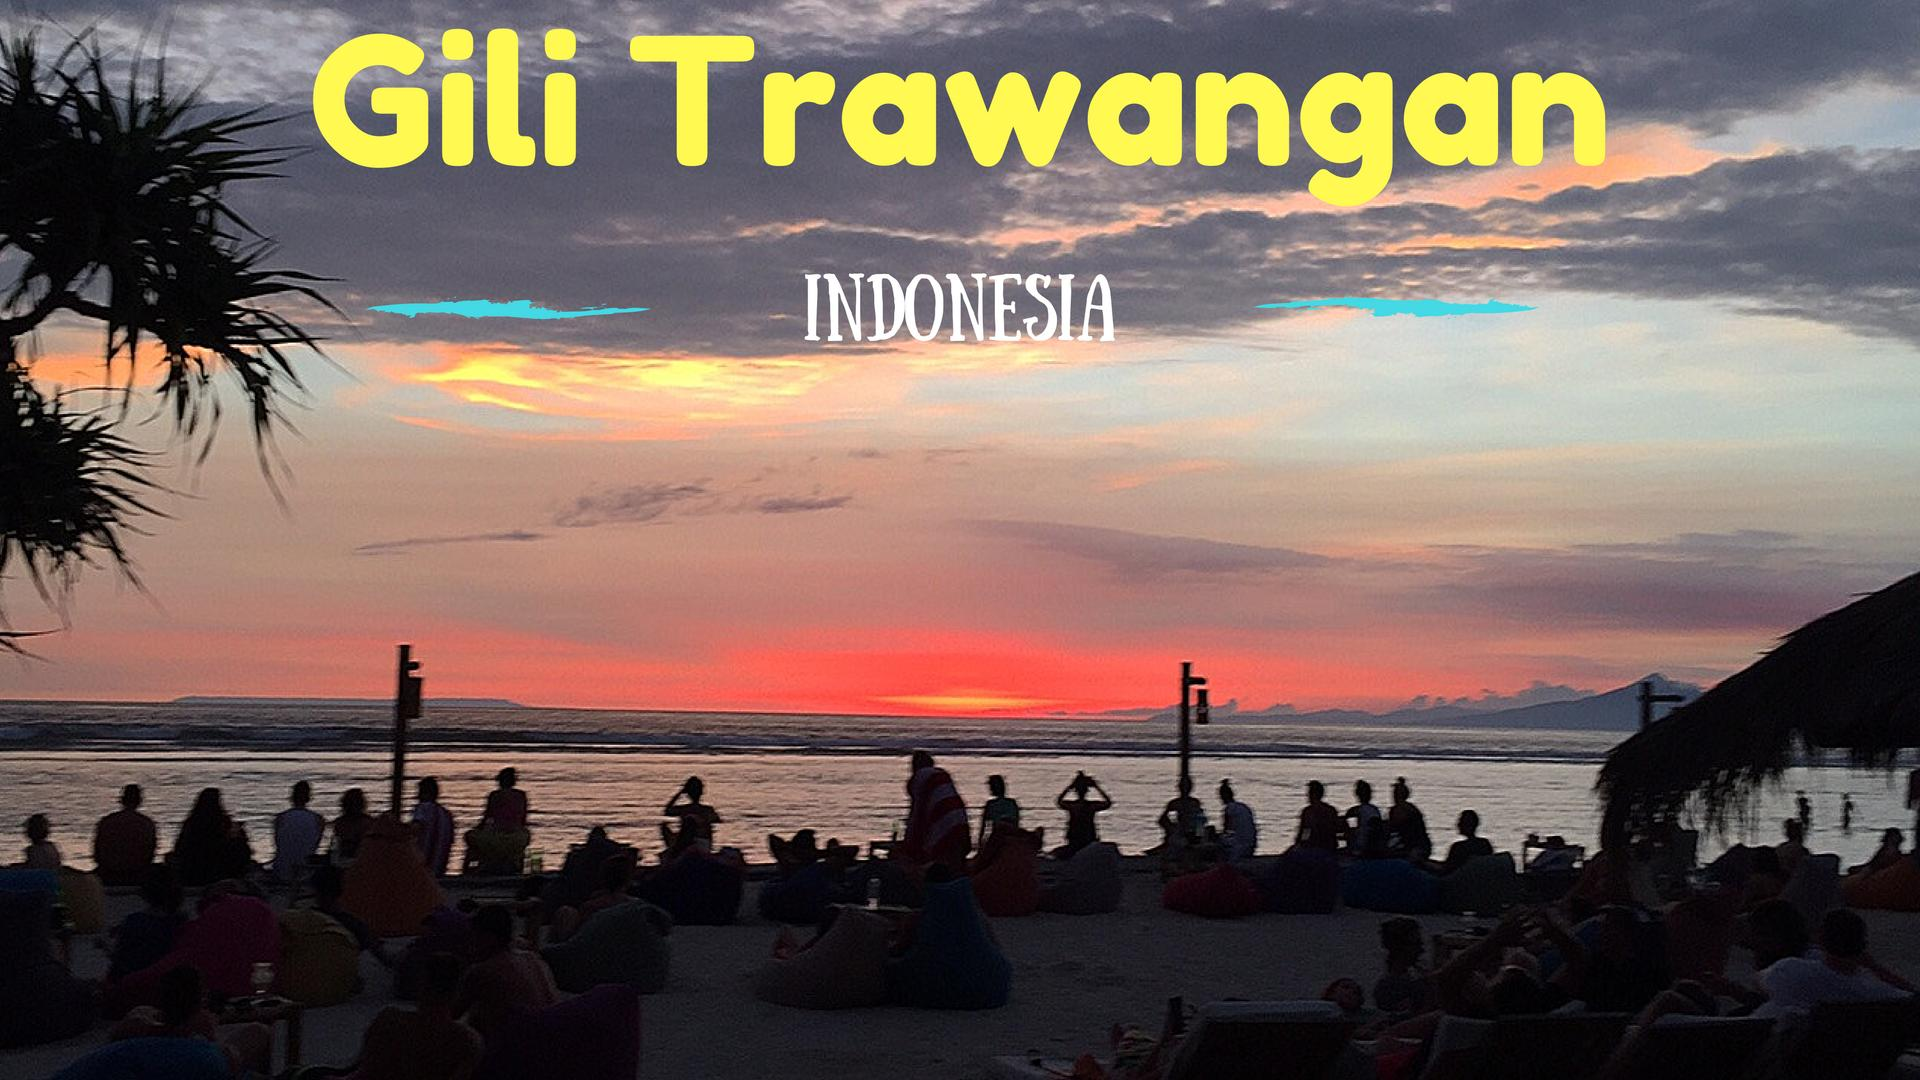 Indonesia : Five Reasons Why I Loved Gili Trawangan Island